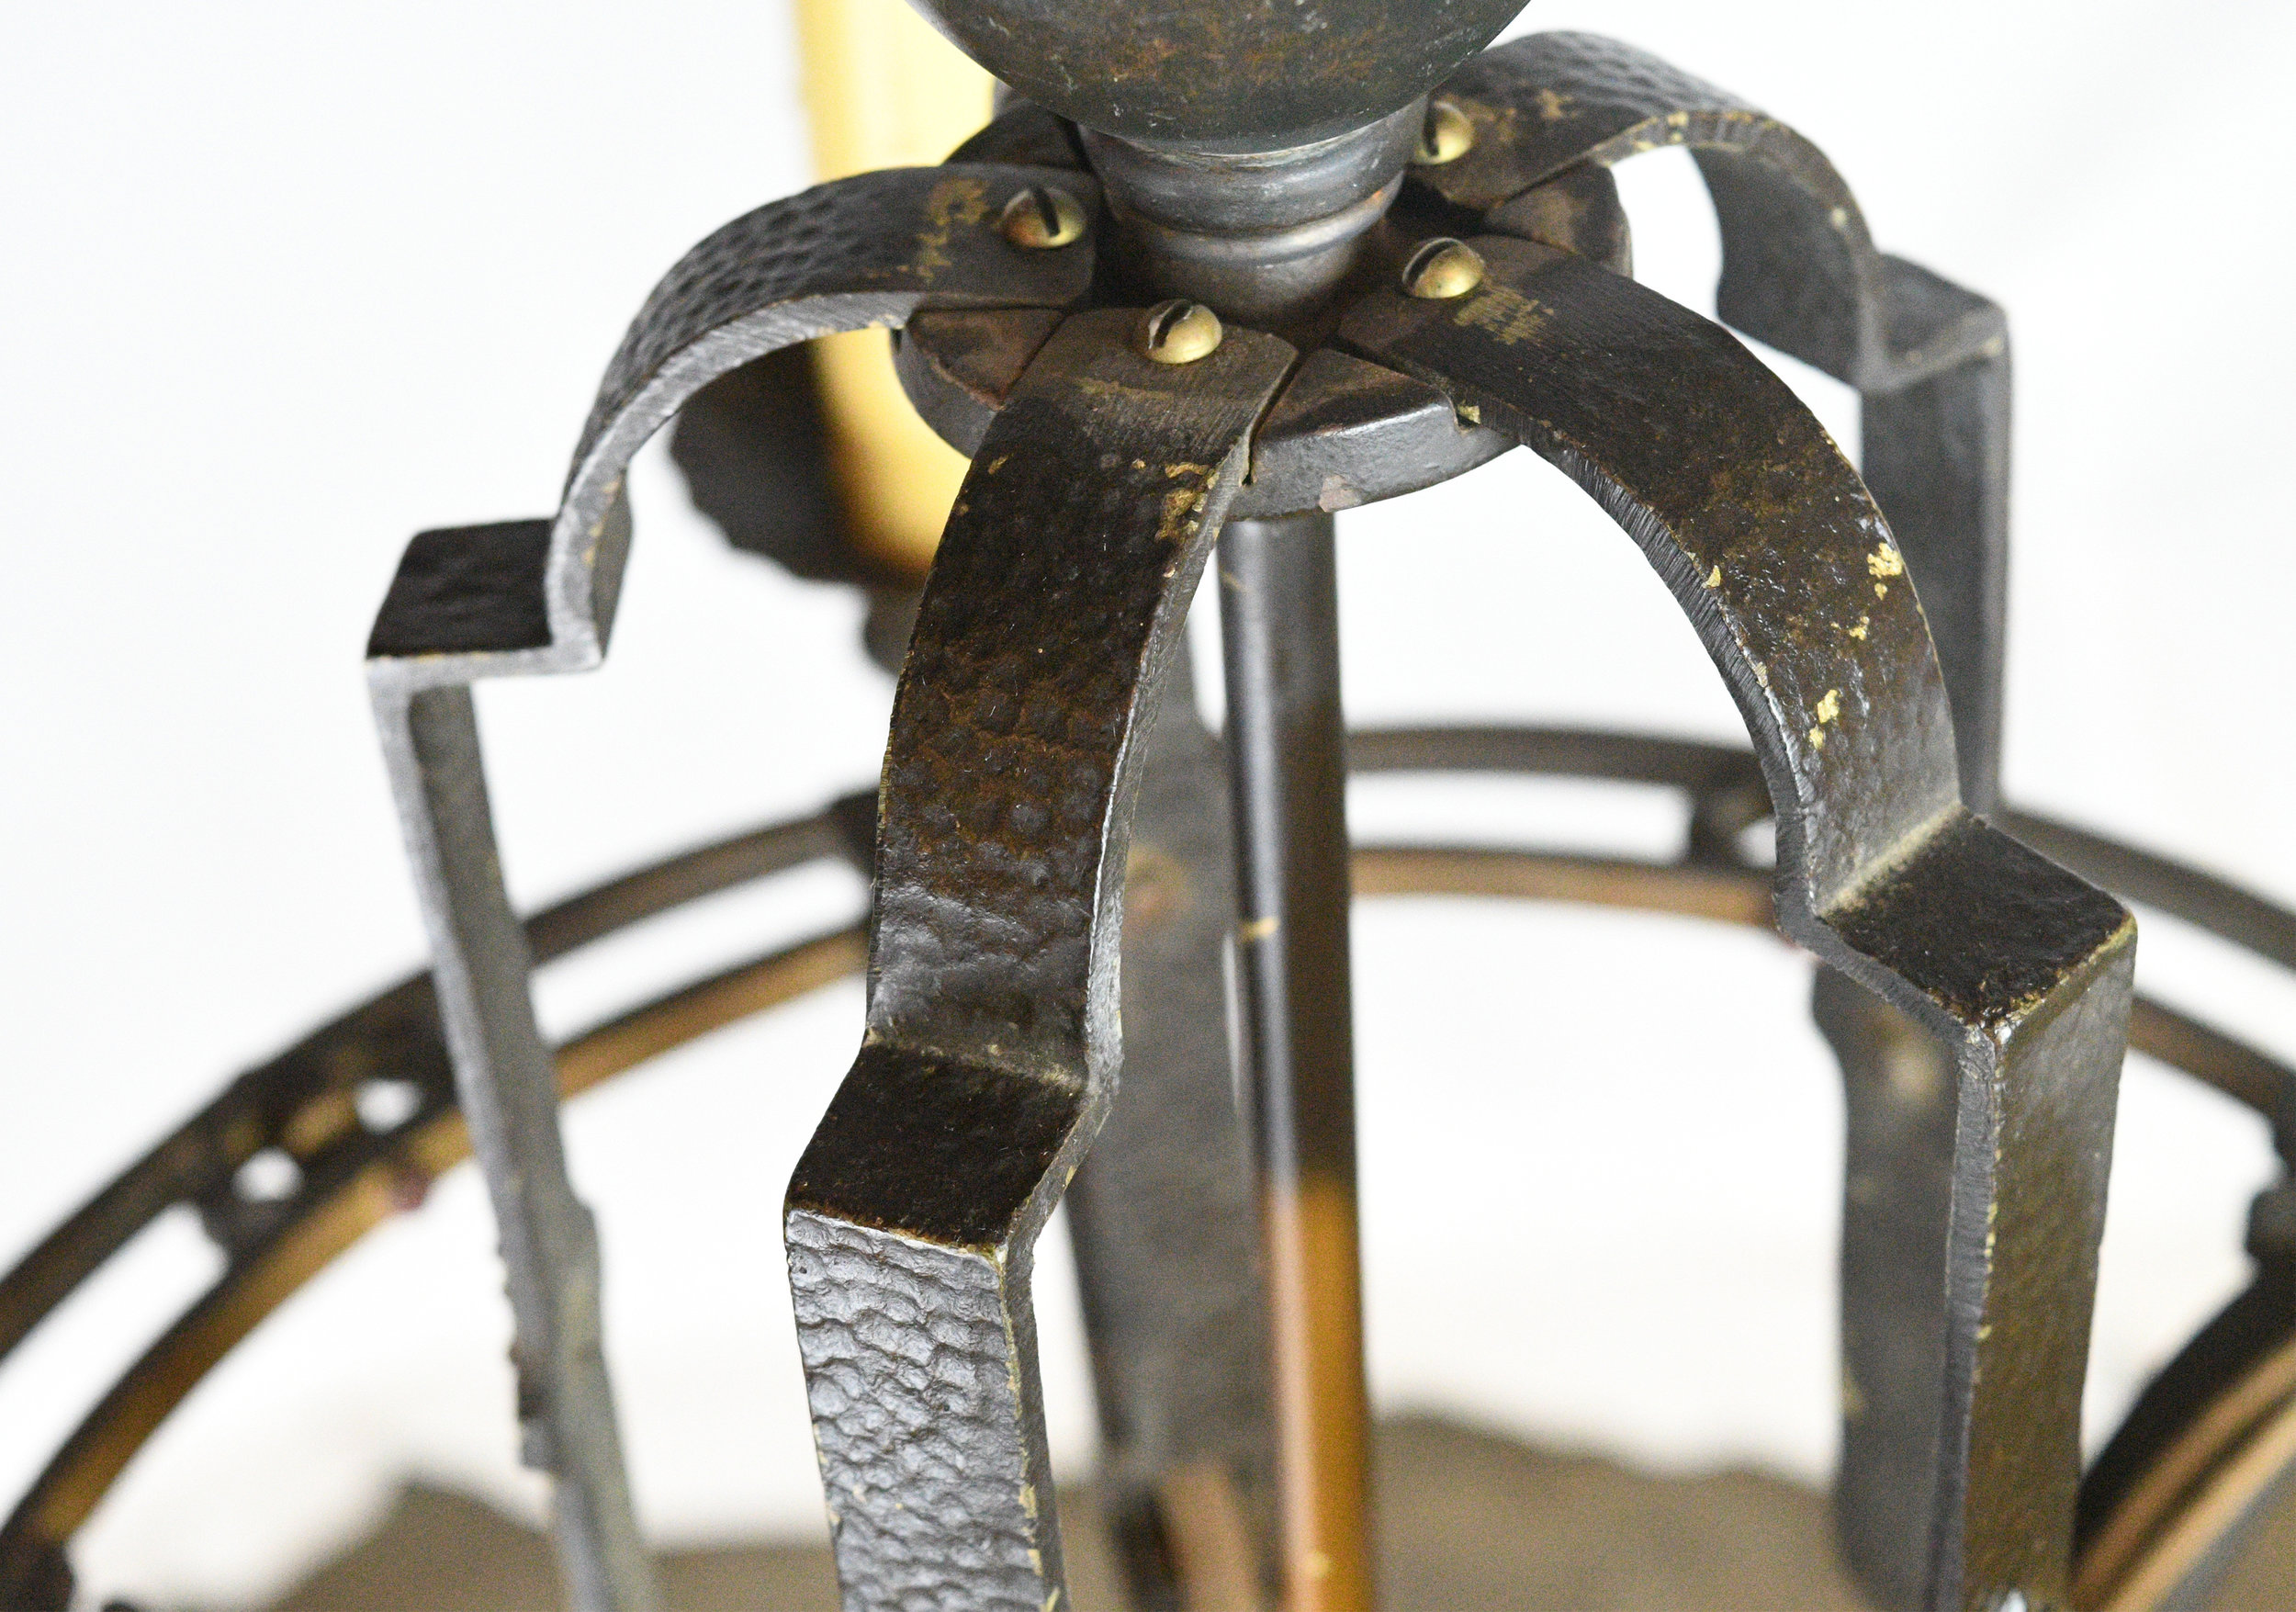 47546-5-candle-hammered-iron-polychrome-chand-detail-16.jpg